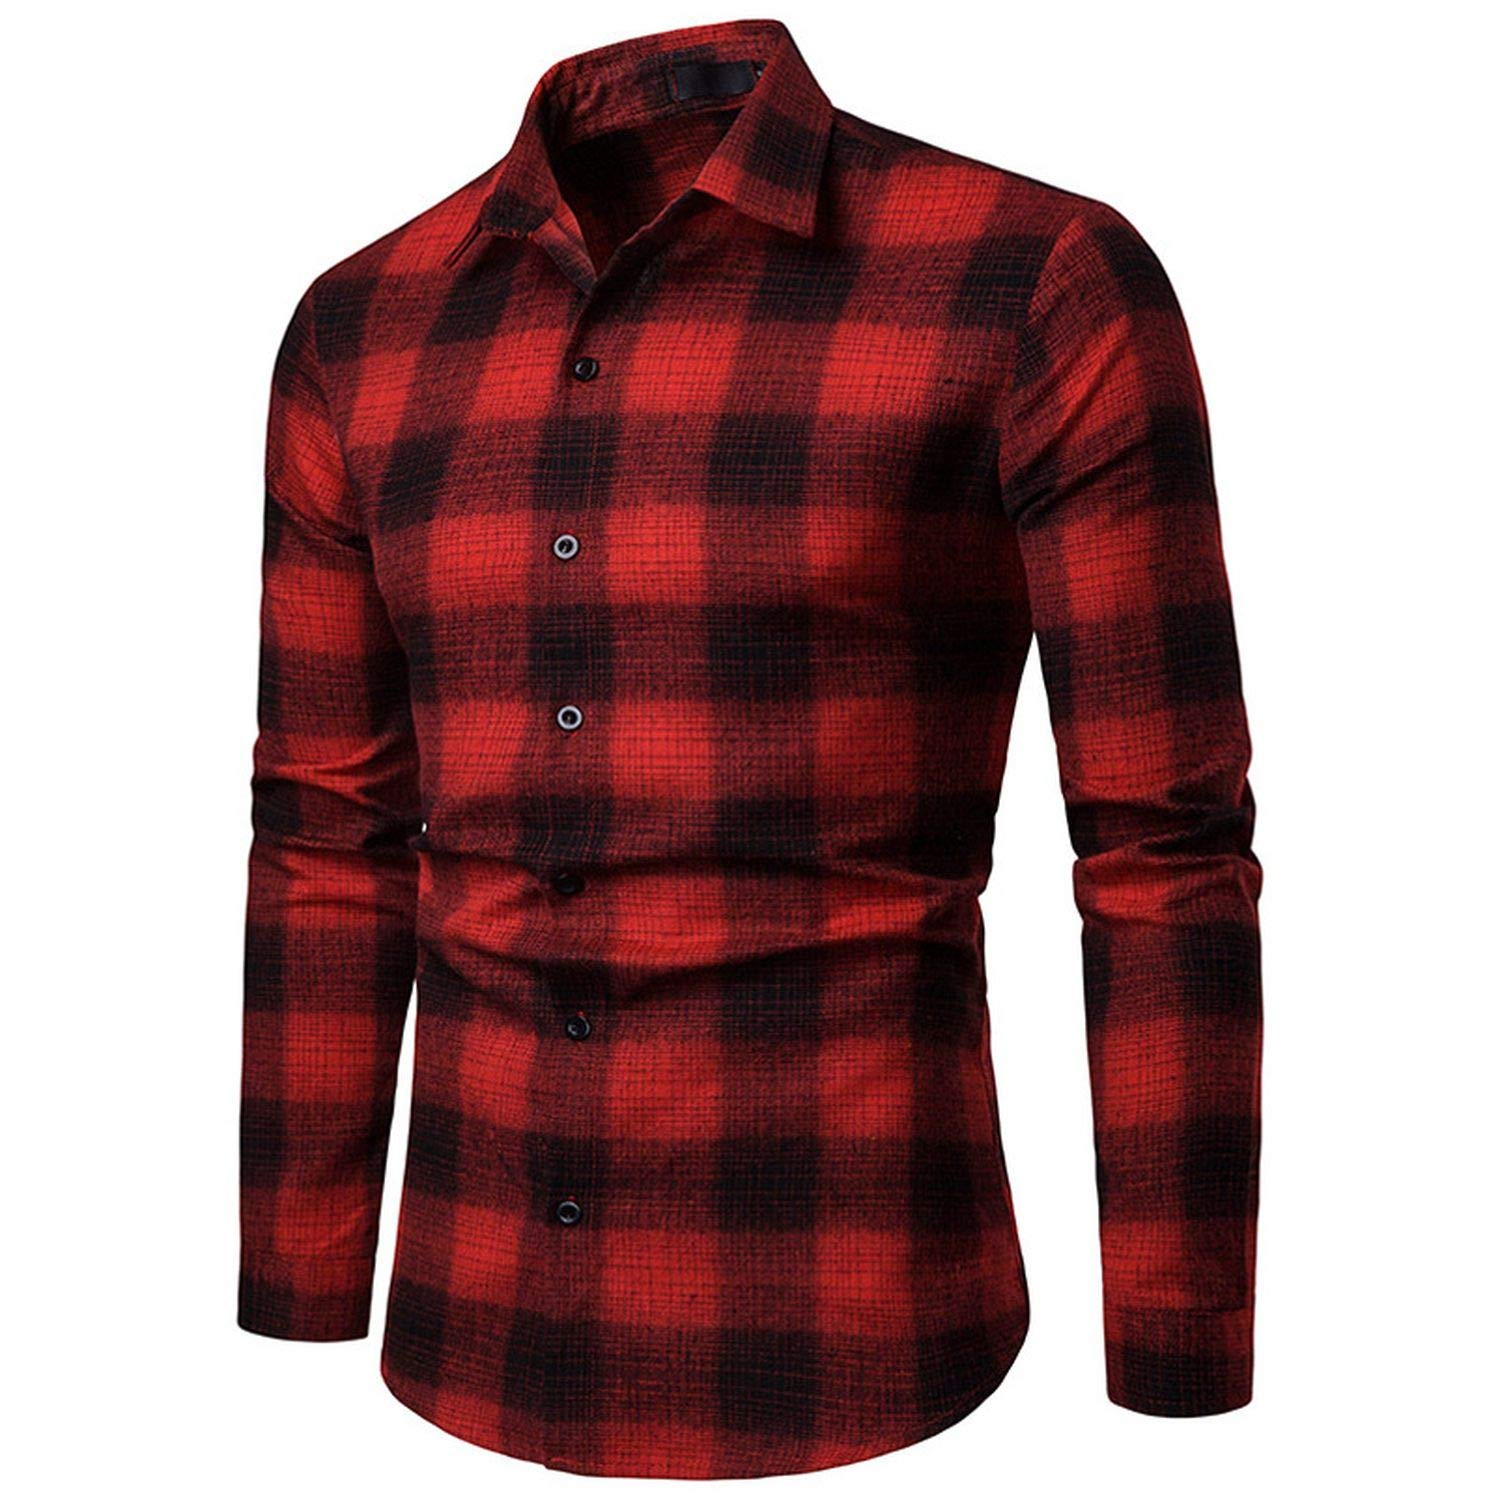 Casual Plaid Men Shirt Fashion Streetwear Mens Shirts Turndown Collar Long Sleeve Masculina Camisas